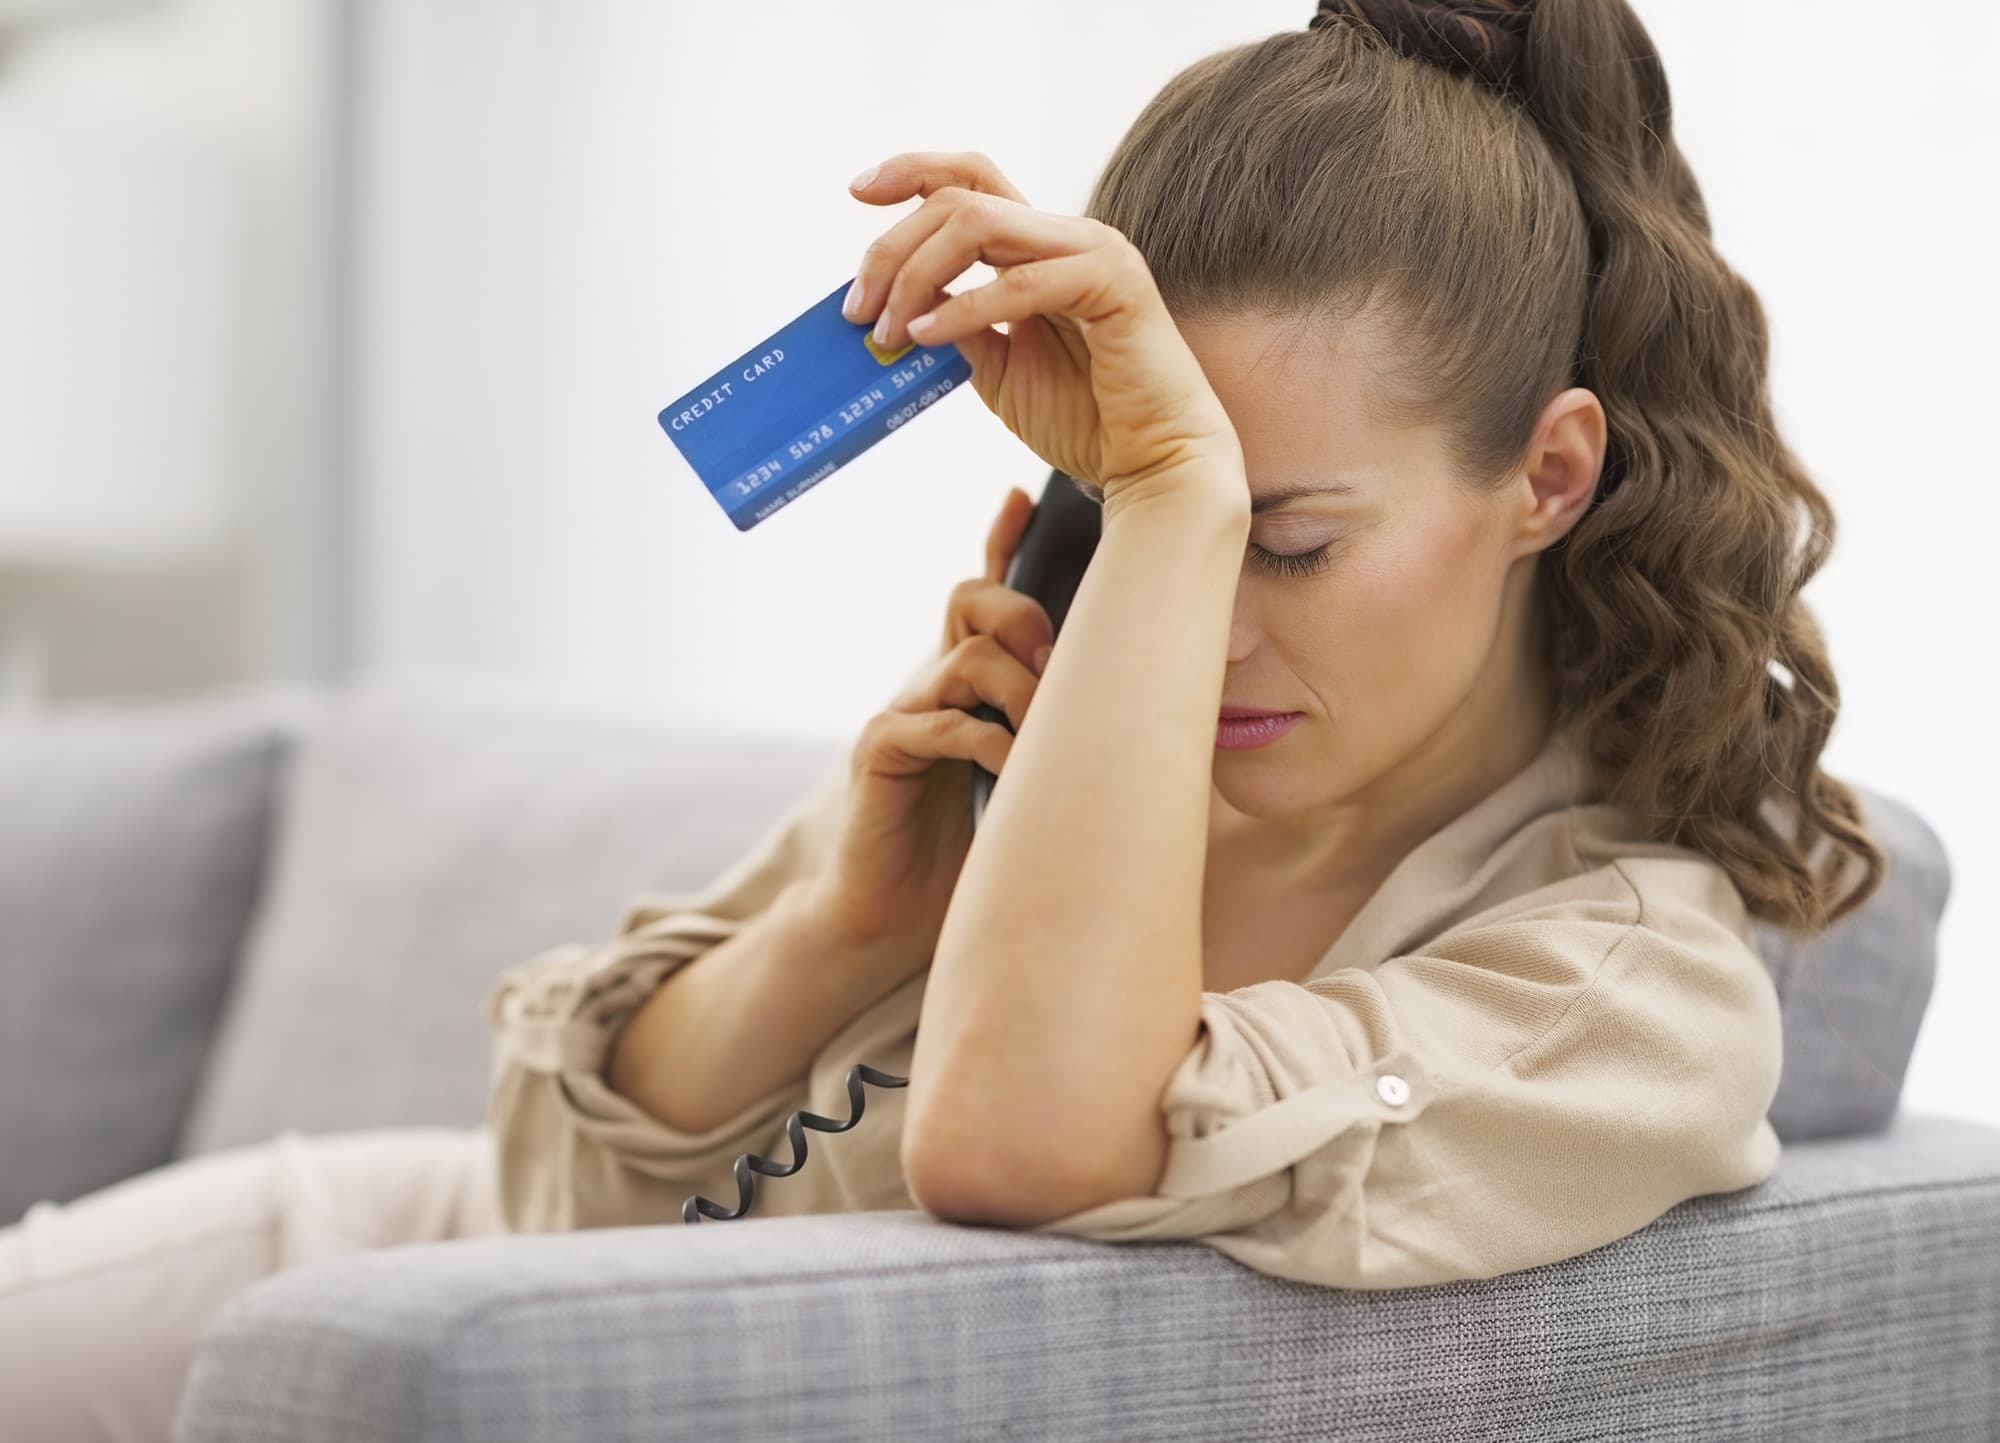 Borrowing to squash your credit card debt? This move could help you save